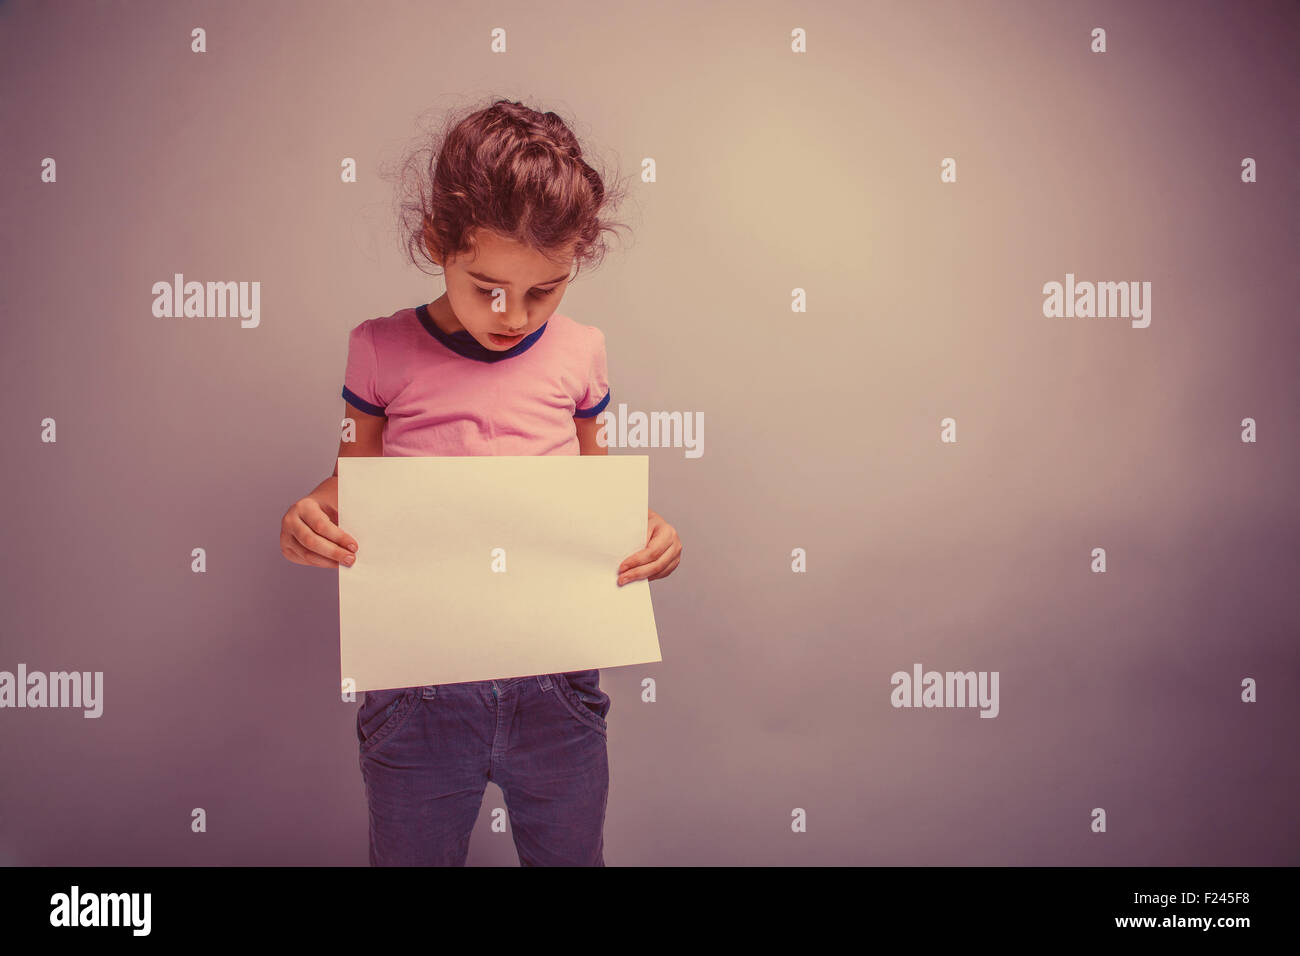 girl child 6 years of European appearance holds a blank slate, l - Stock Image